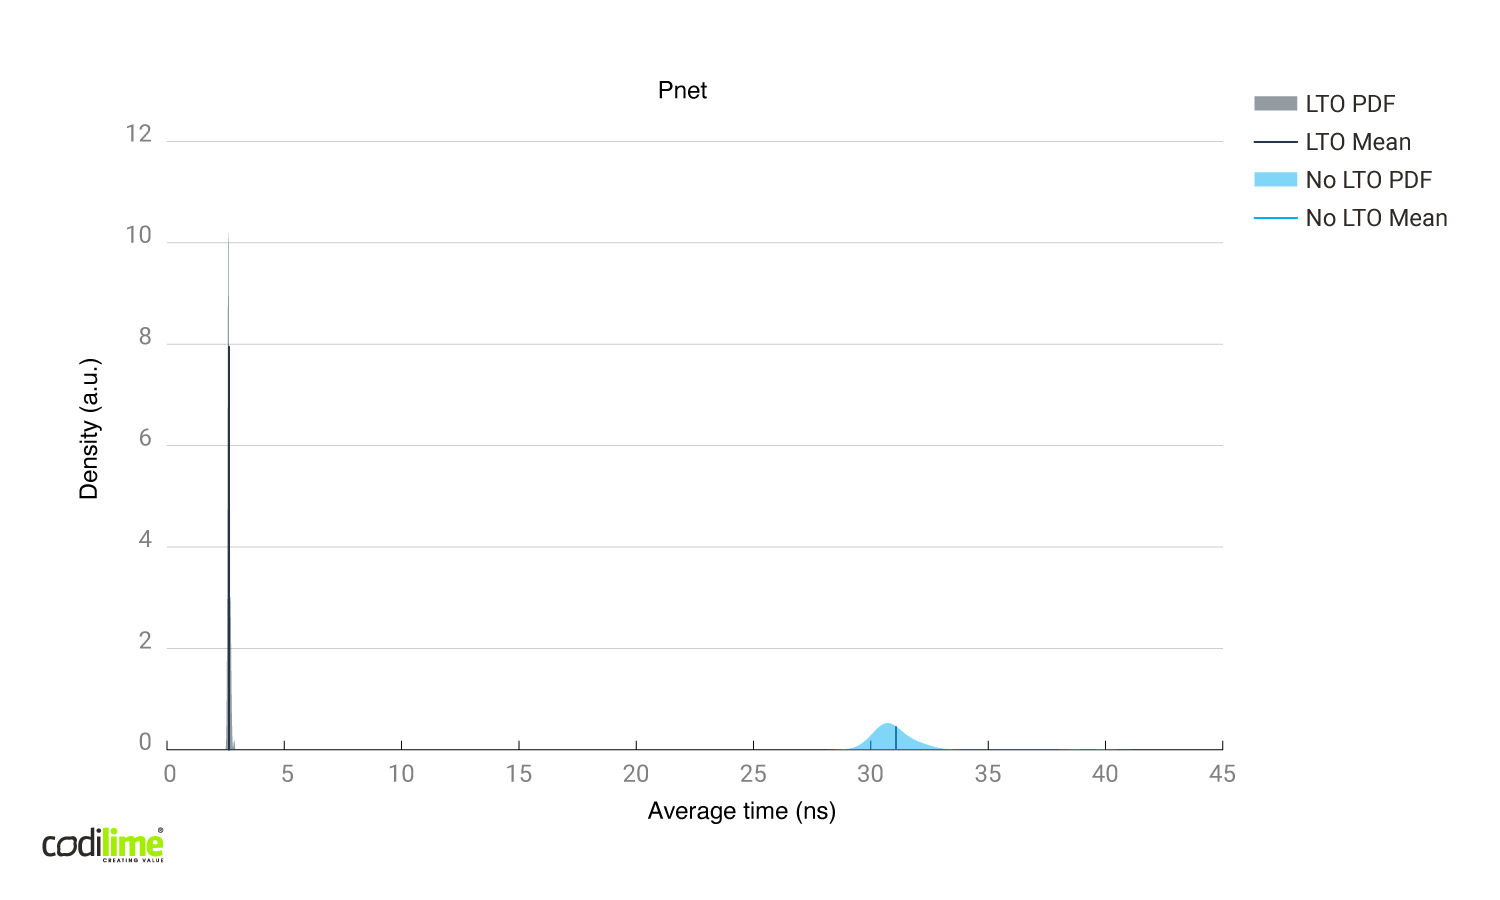 Link time optimizations enabled vs disabled using Pnet library.